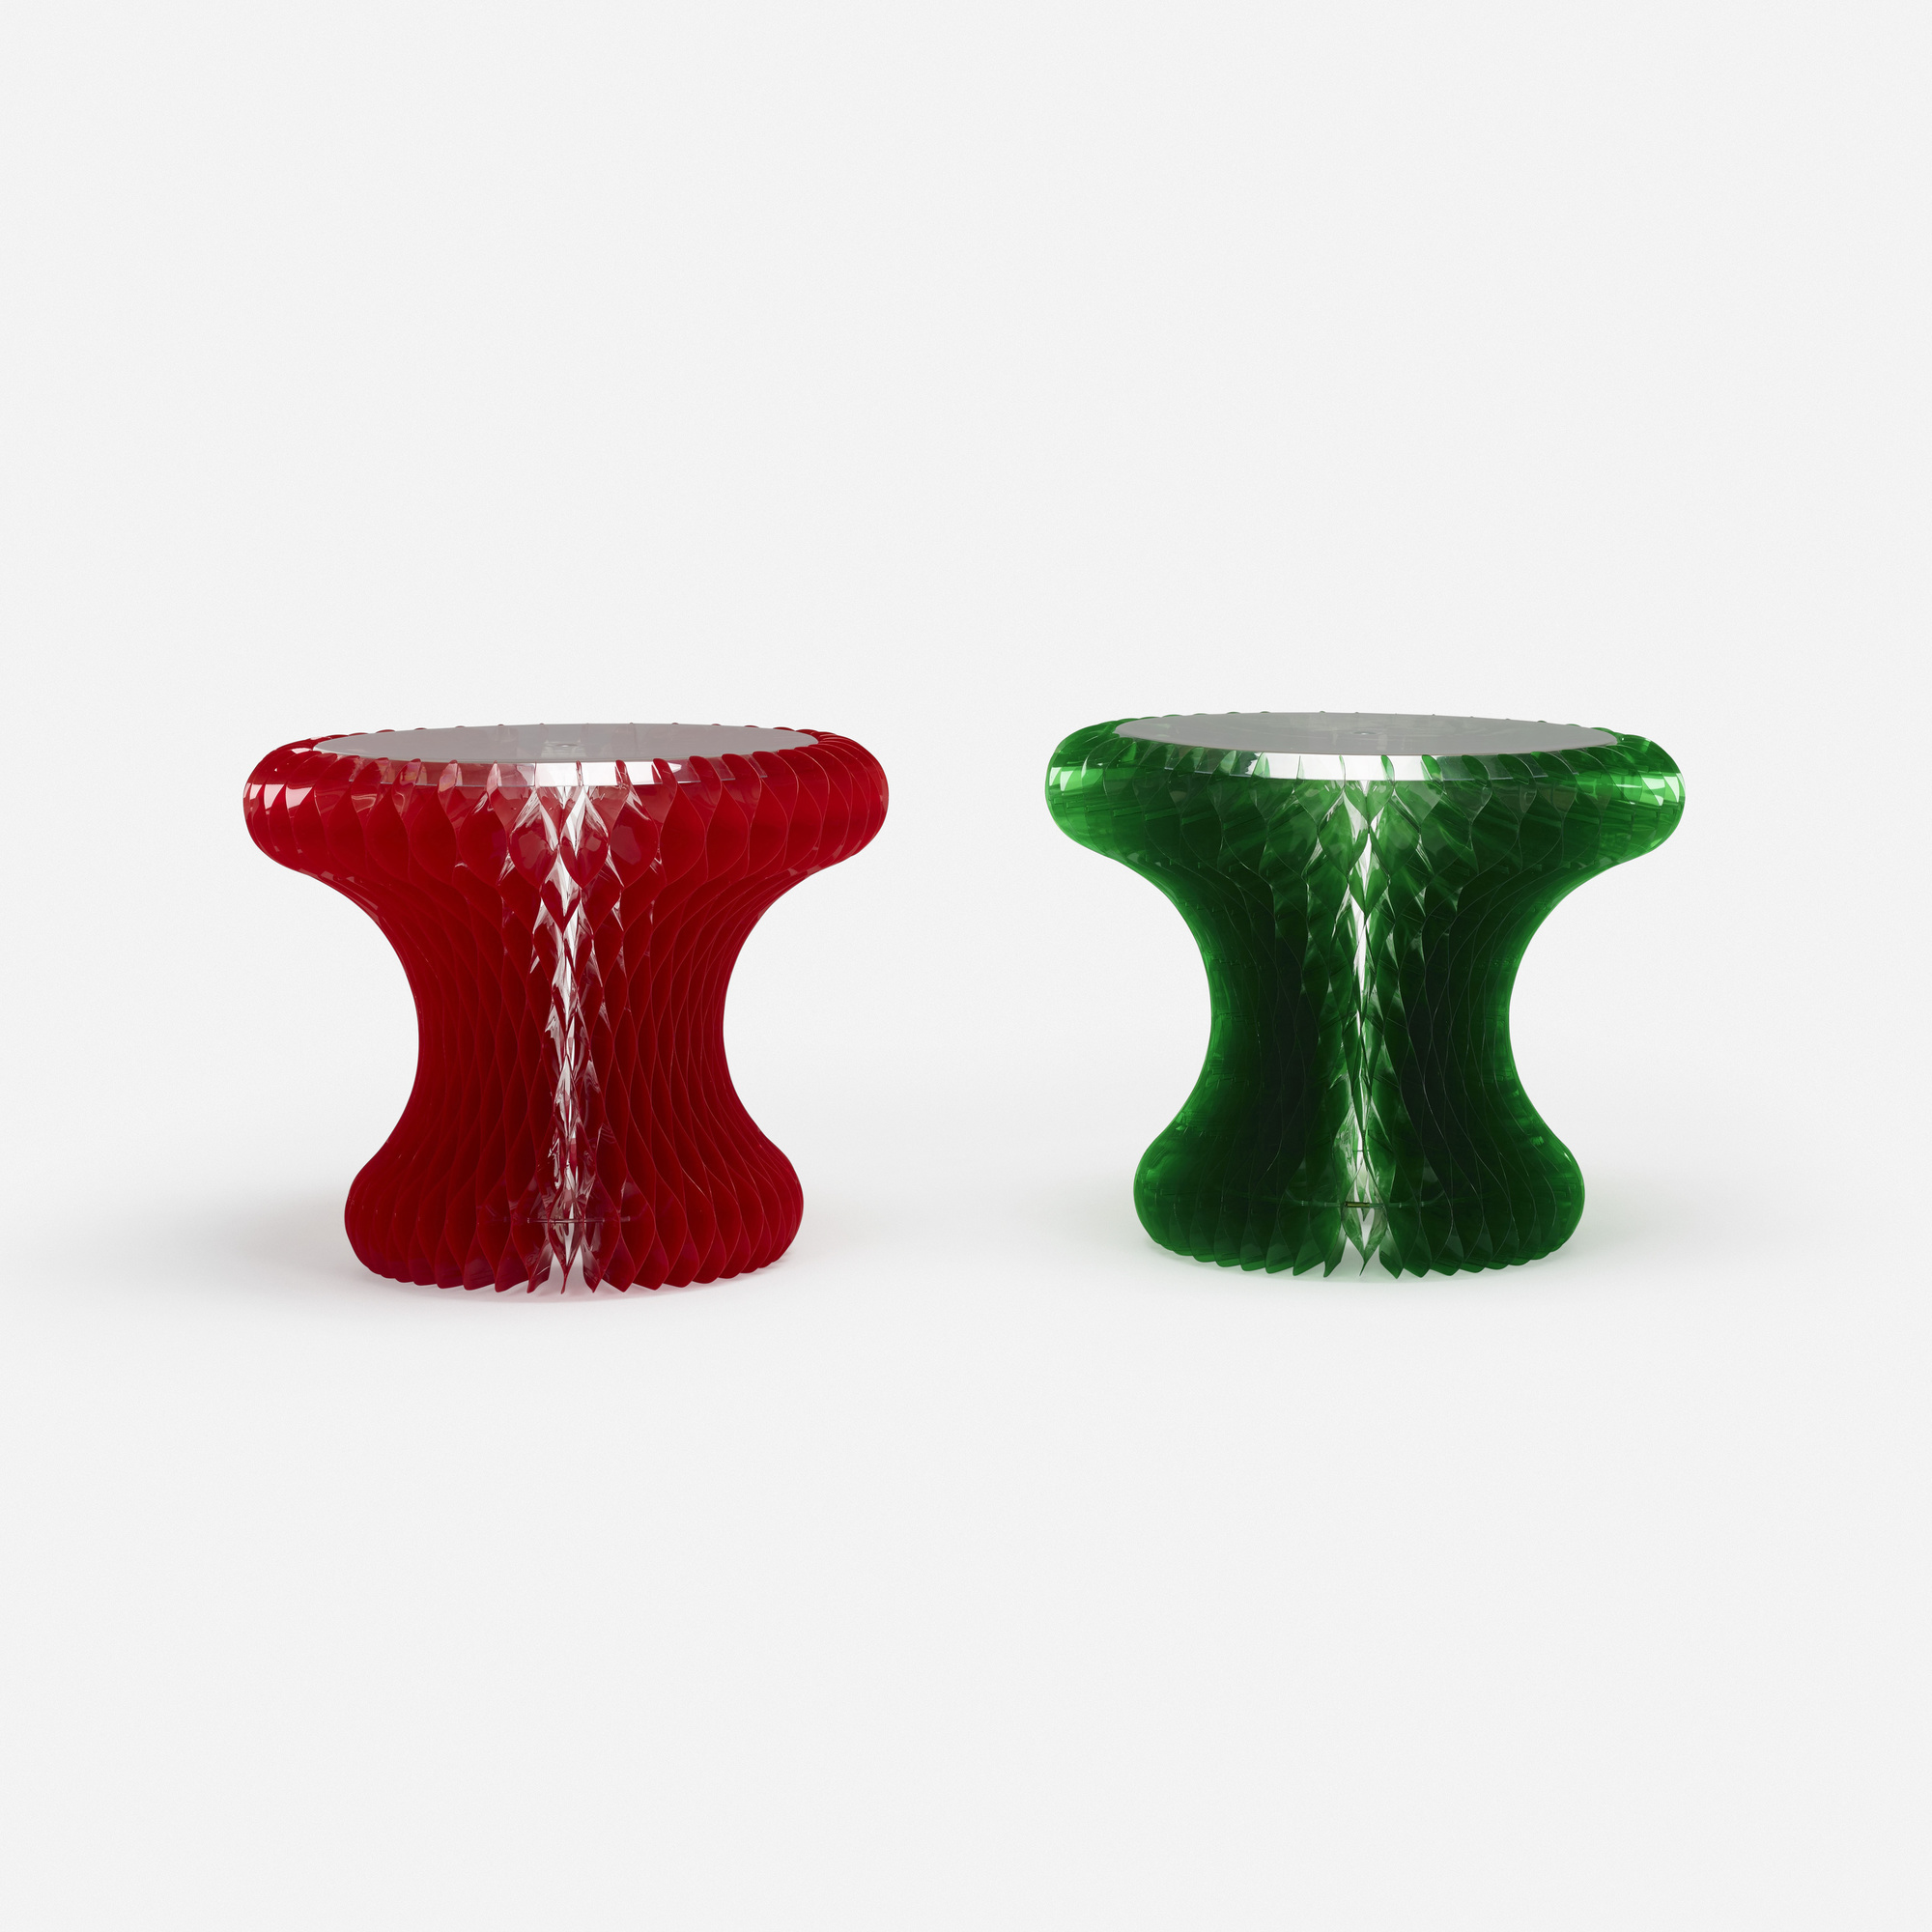 640: Marc Newson / Gello tables, pair (2 of 2)